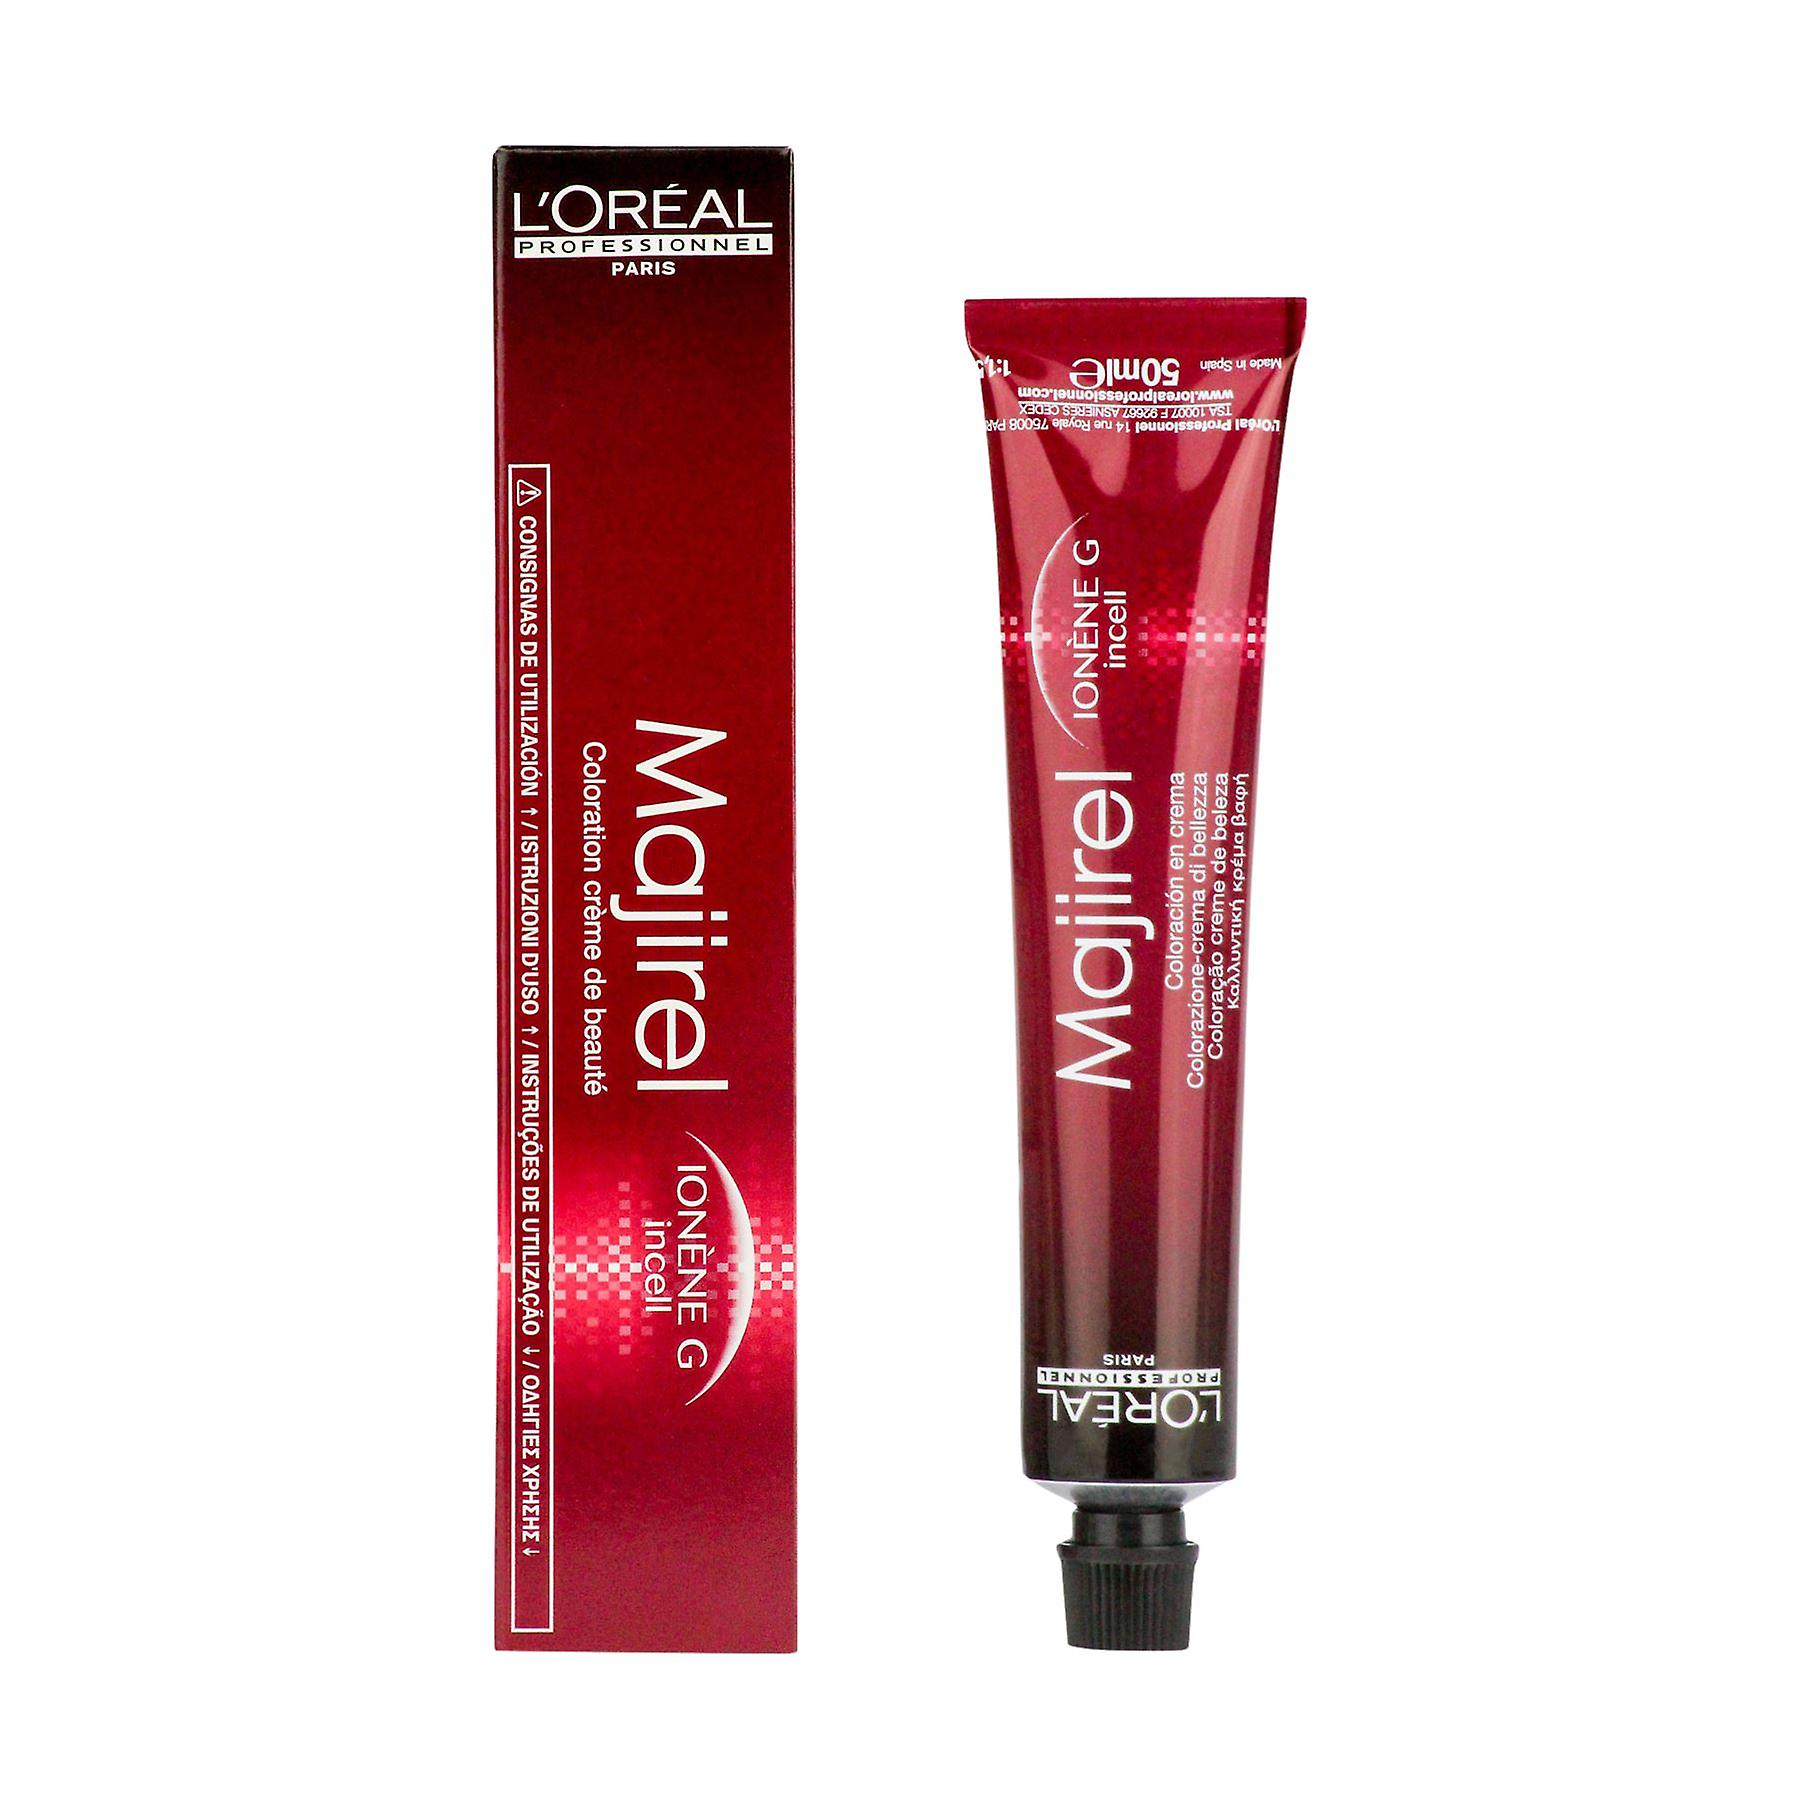 L'Oreal Professionnel Majirel 2, 10 Brown 50ml